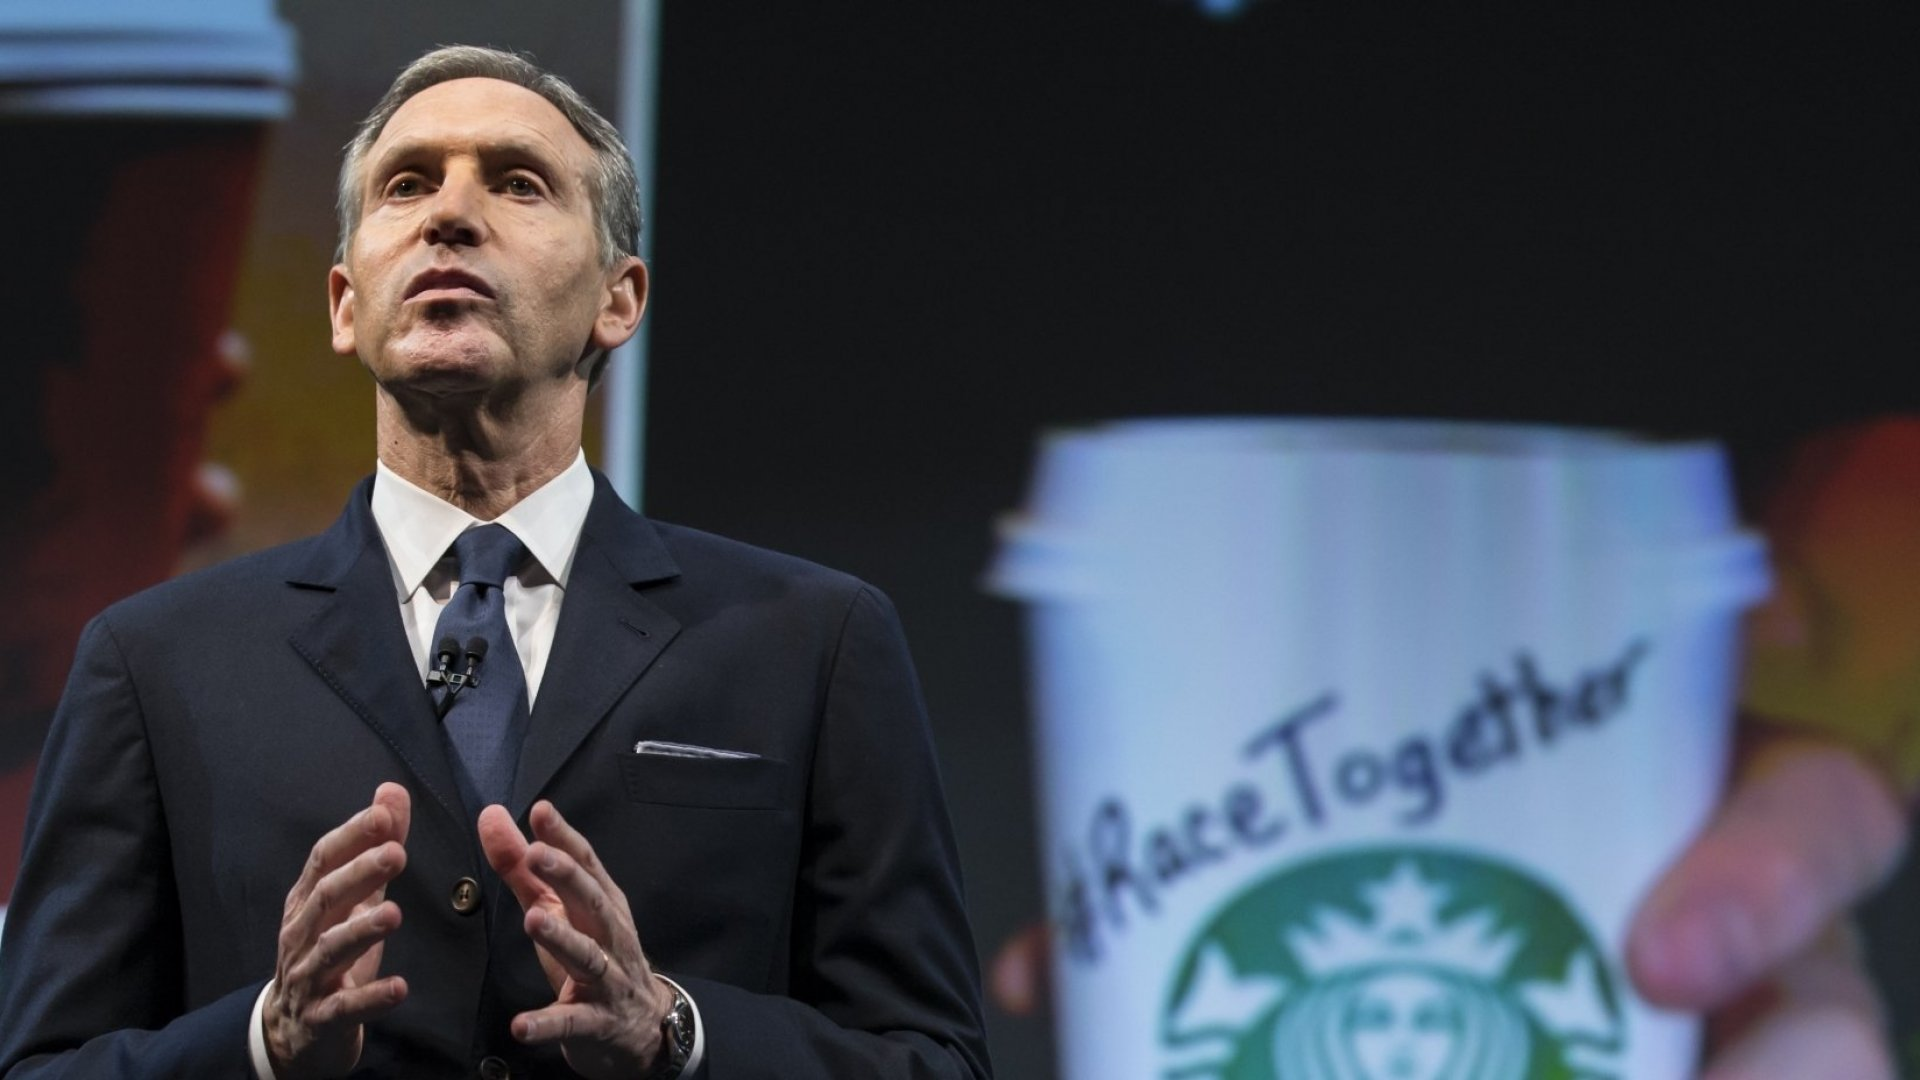 """Starbucks Chairman and CEO Howard Schultz addresses the """"Race Together Program"""" during the Starbucks annual shareholders meeting on March 18 in Seattle. The program is an effort to promote discussion on racial inequality in the United States. (Stephen Brashear/Getty Images)"""